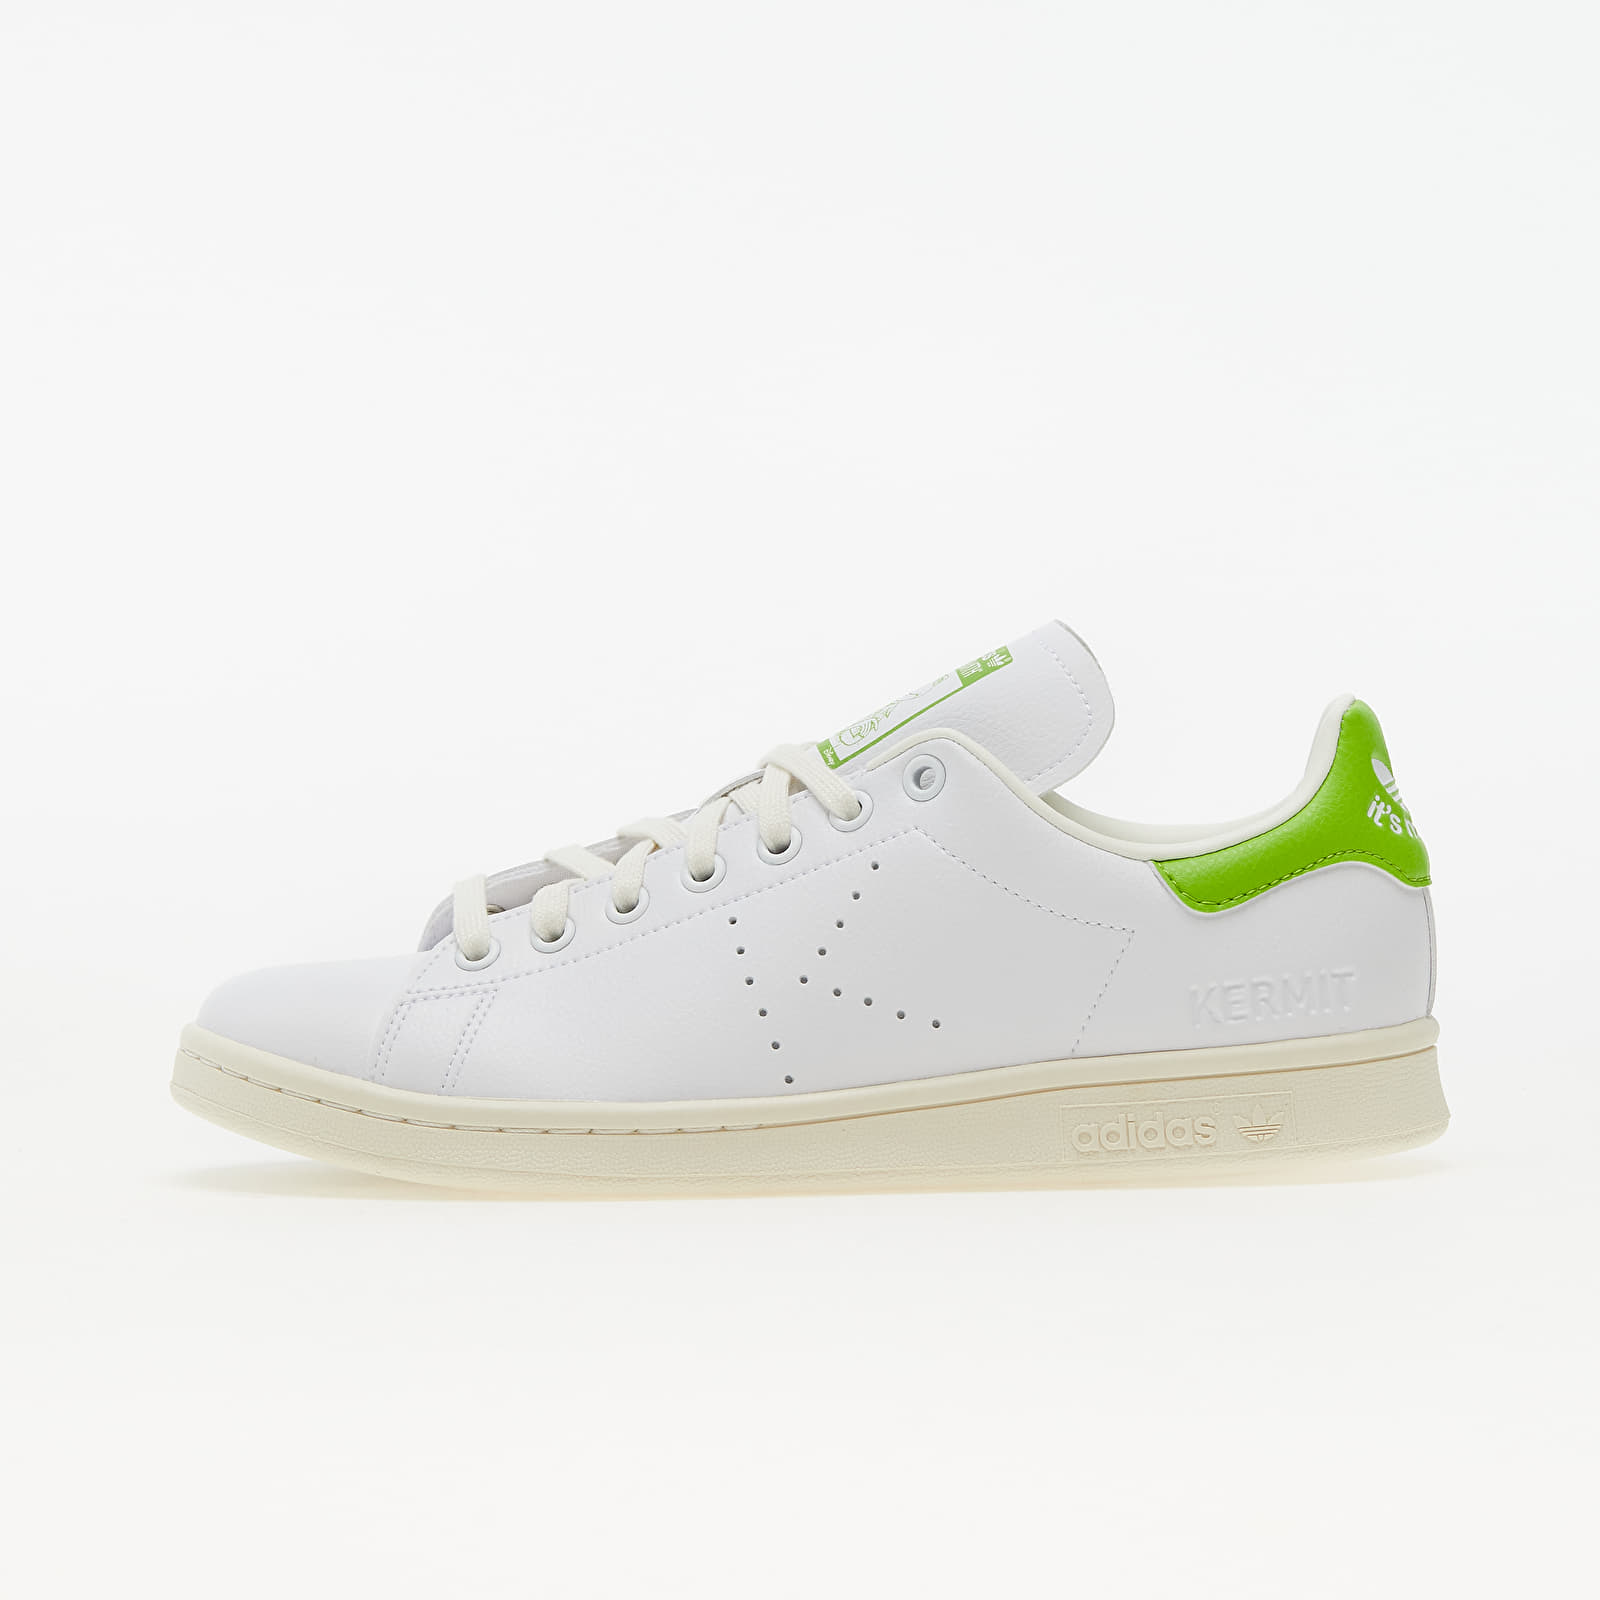 adidas Disney Stan Smith Ftw White/ Phanton/ Off White EUR 42